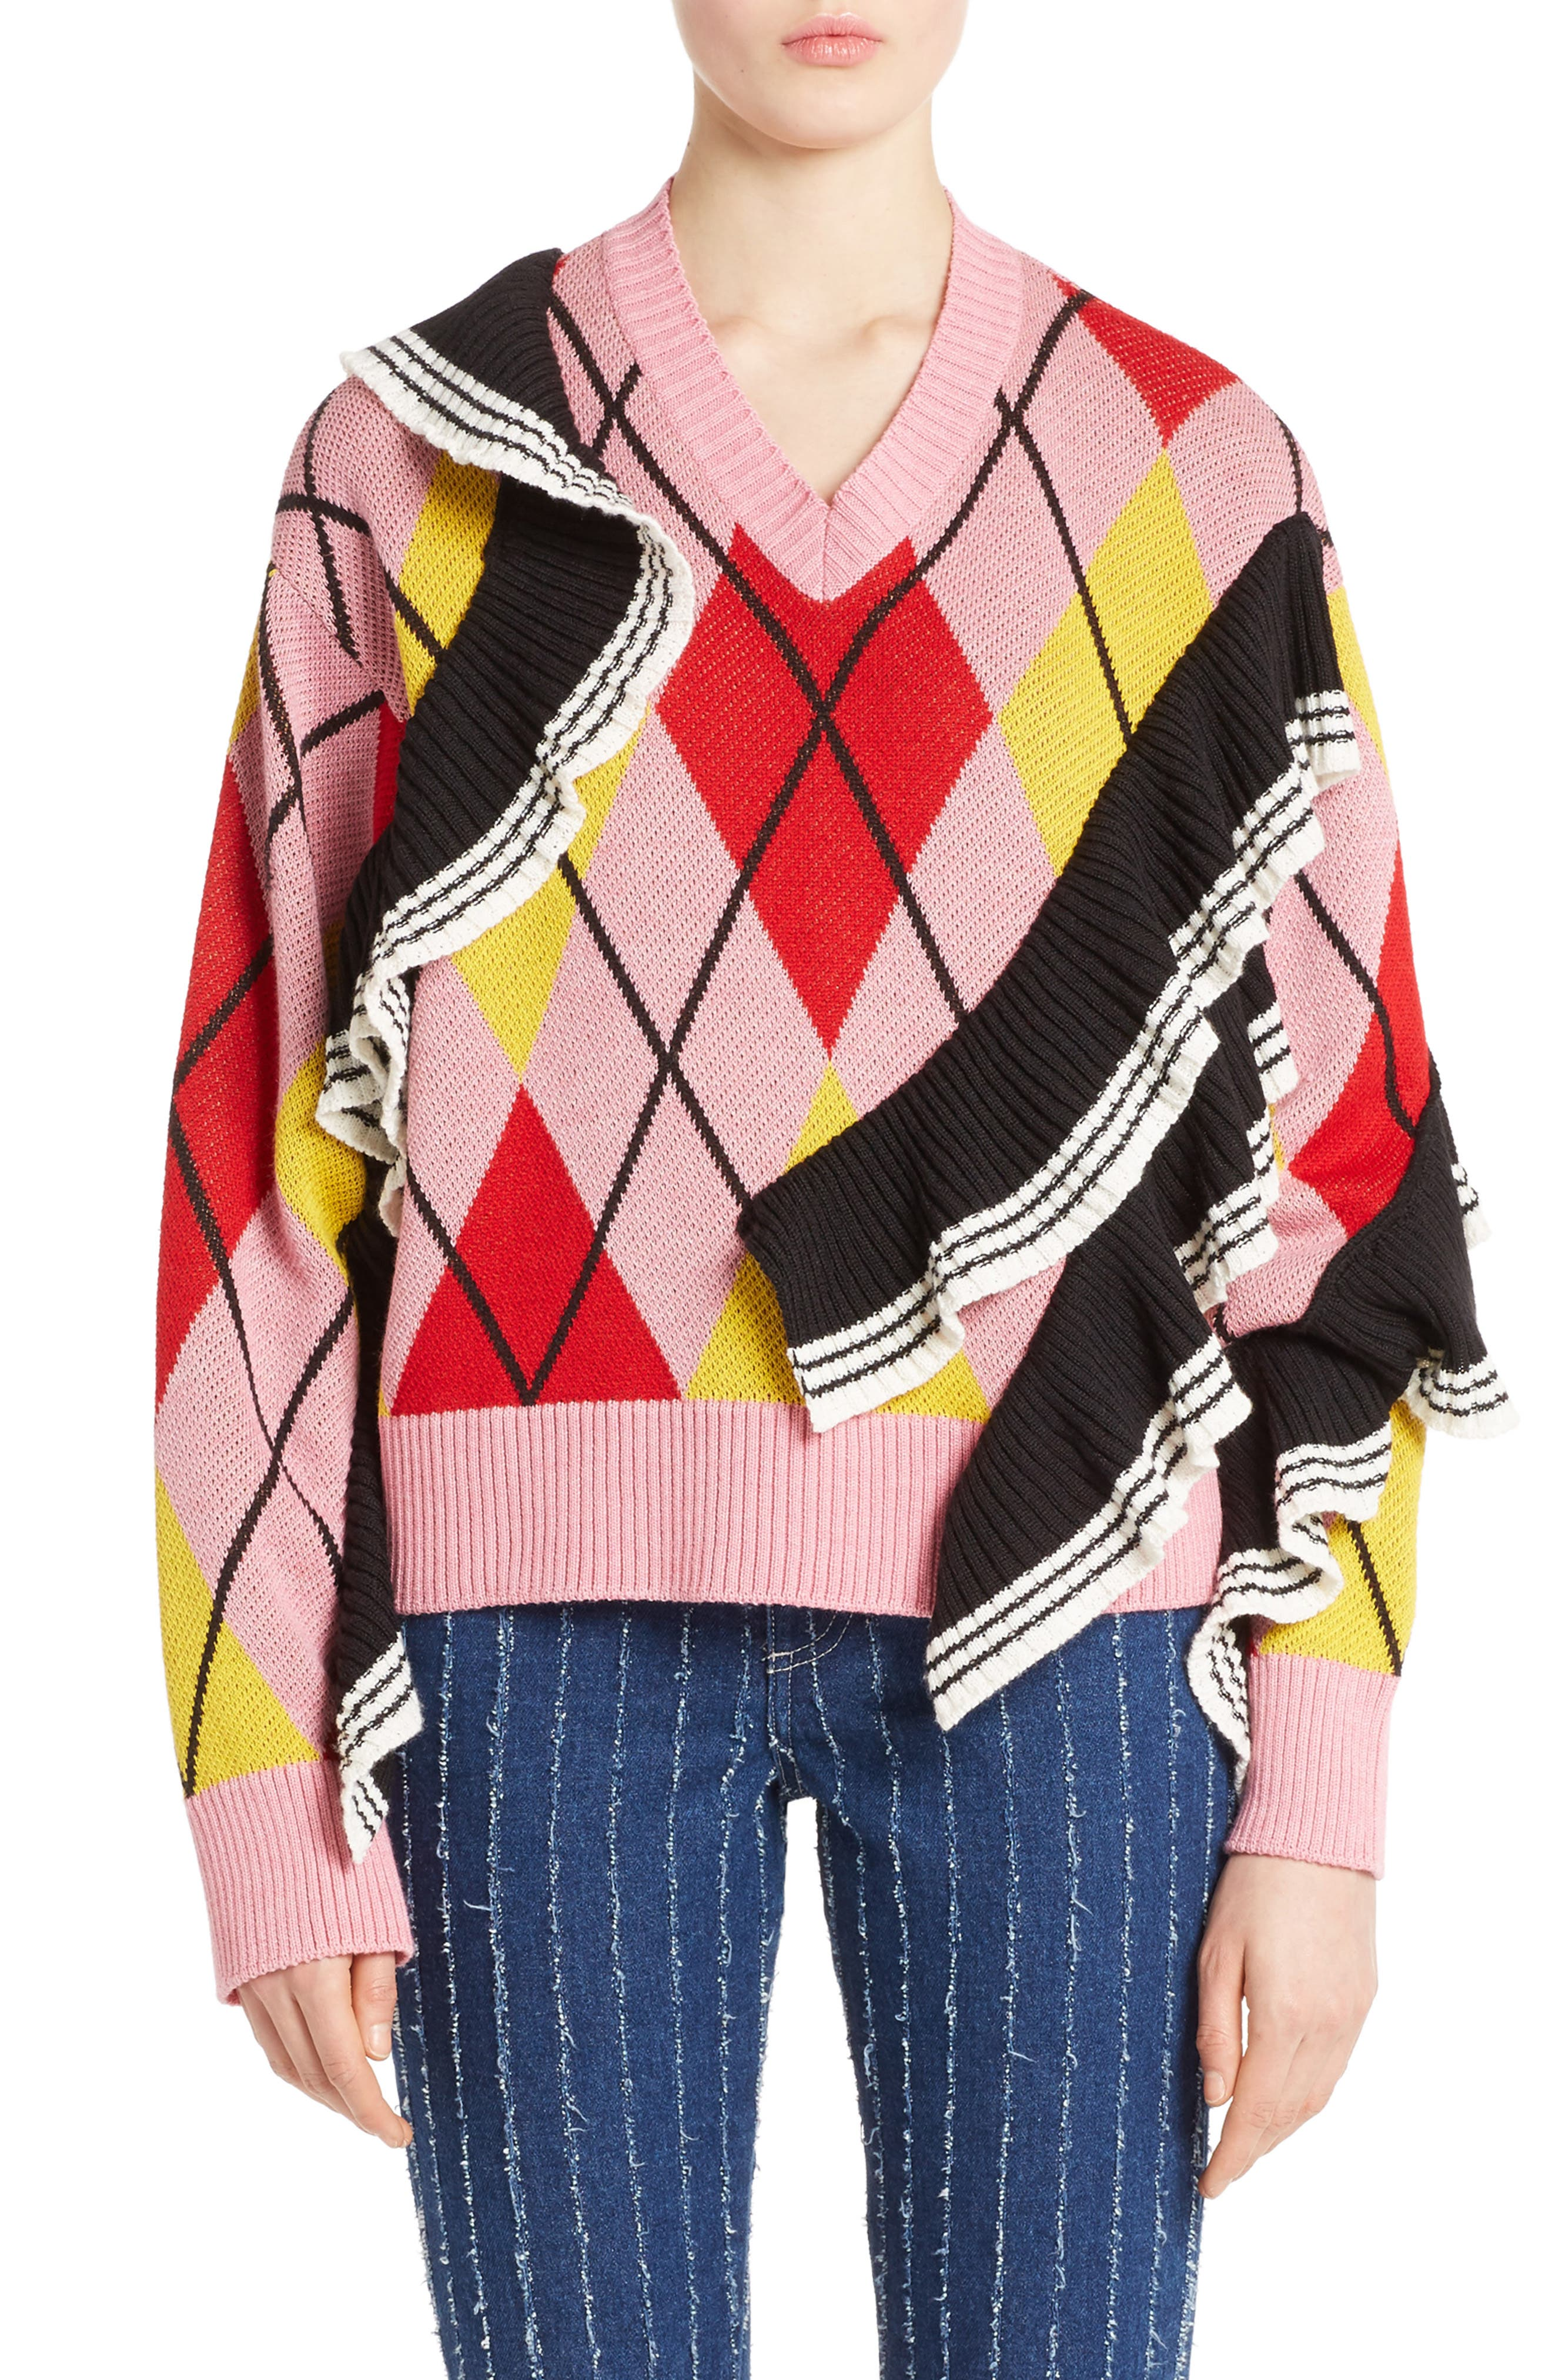 Argyle Ruffle Sweater,                         Main,                         color, Pink/ Red/ Yellow